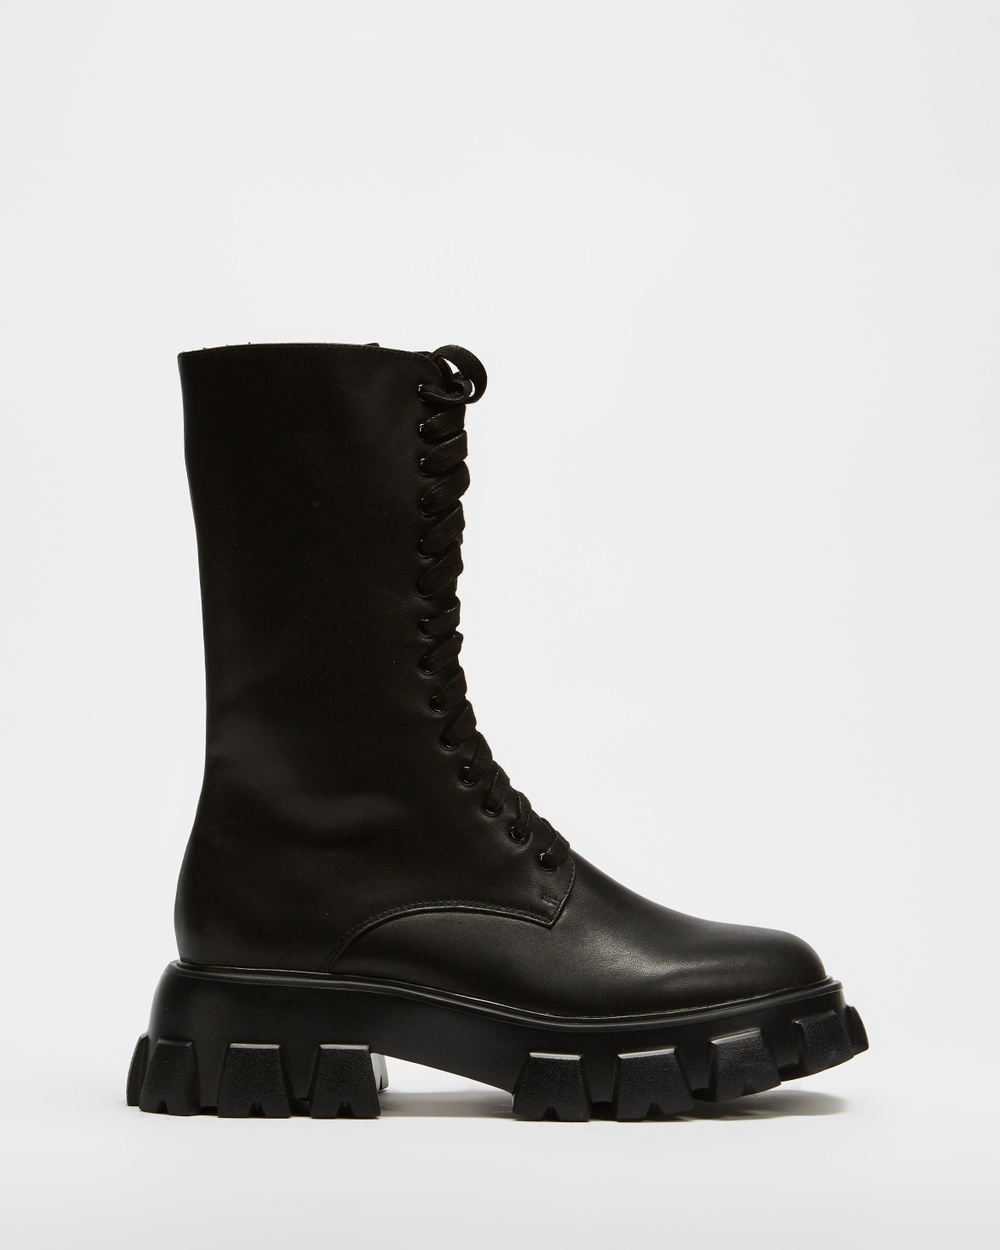 AERE Chunky Cleated Sole Leather Lace Up Boots Black Leather